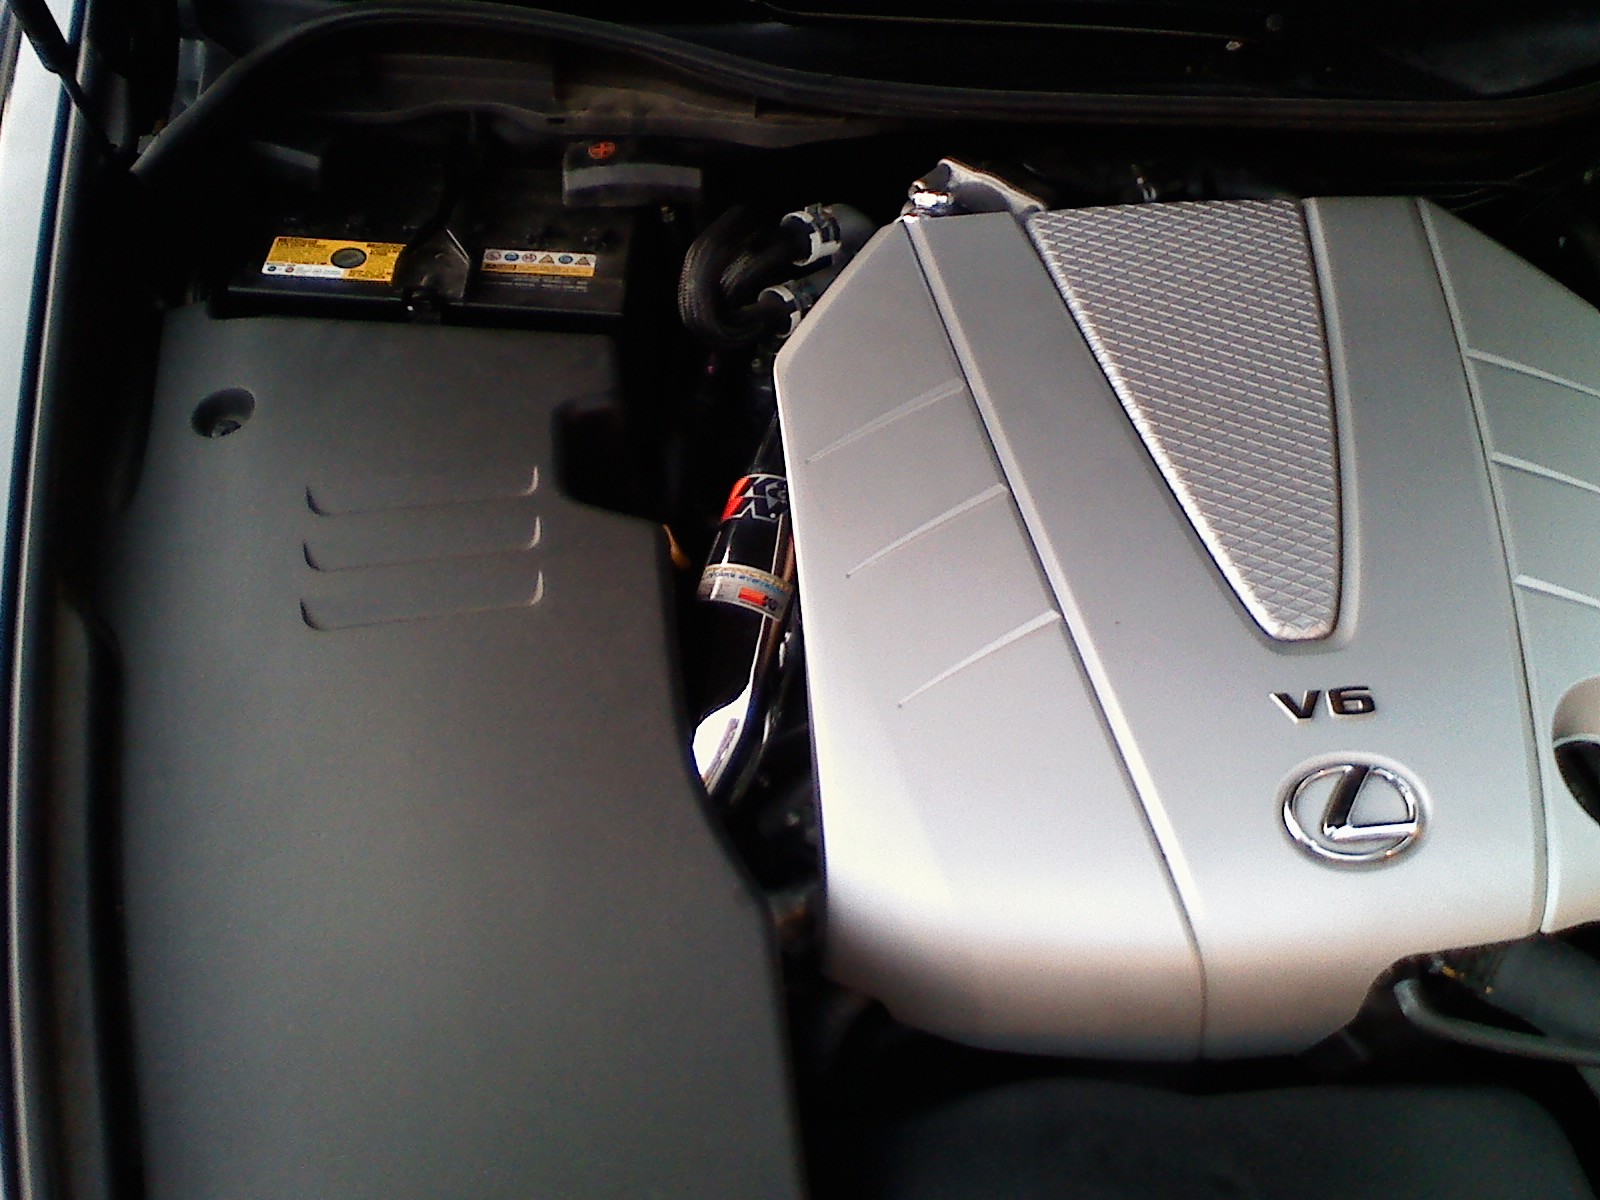 Finished my K&N intake on my Gs350 - ClubLexus - Lexus Forum Discussion